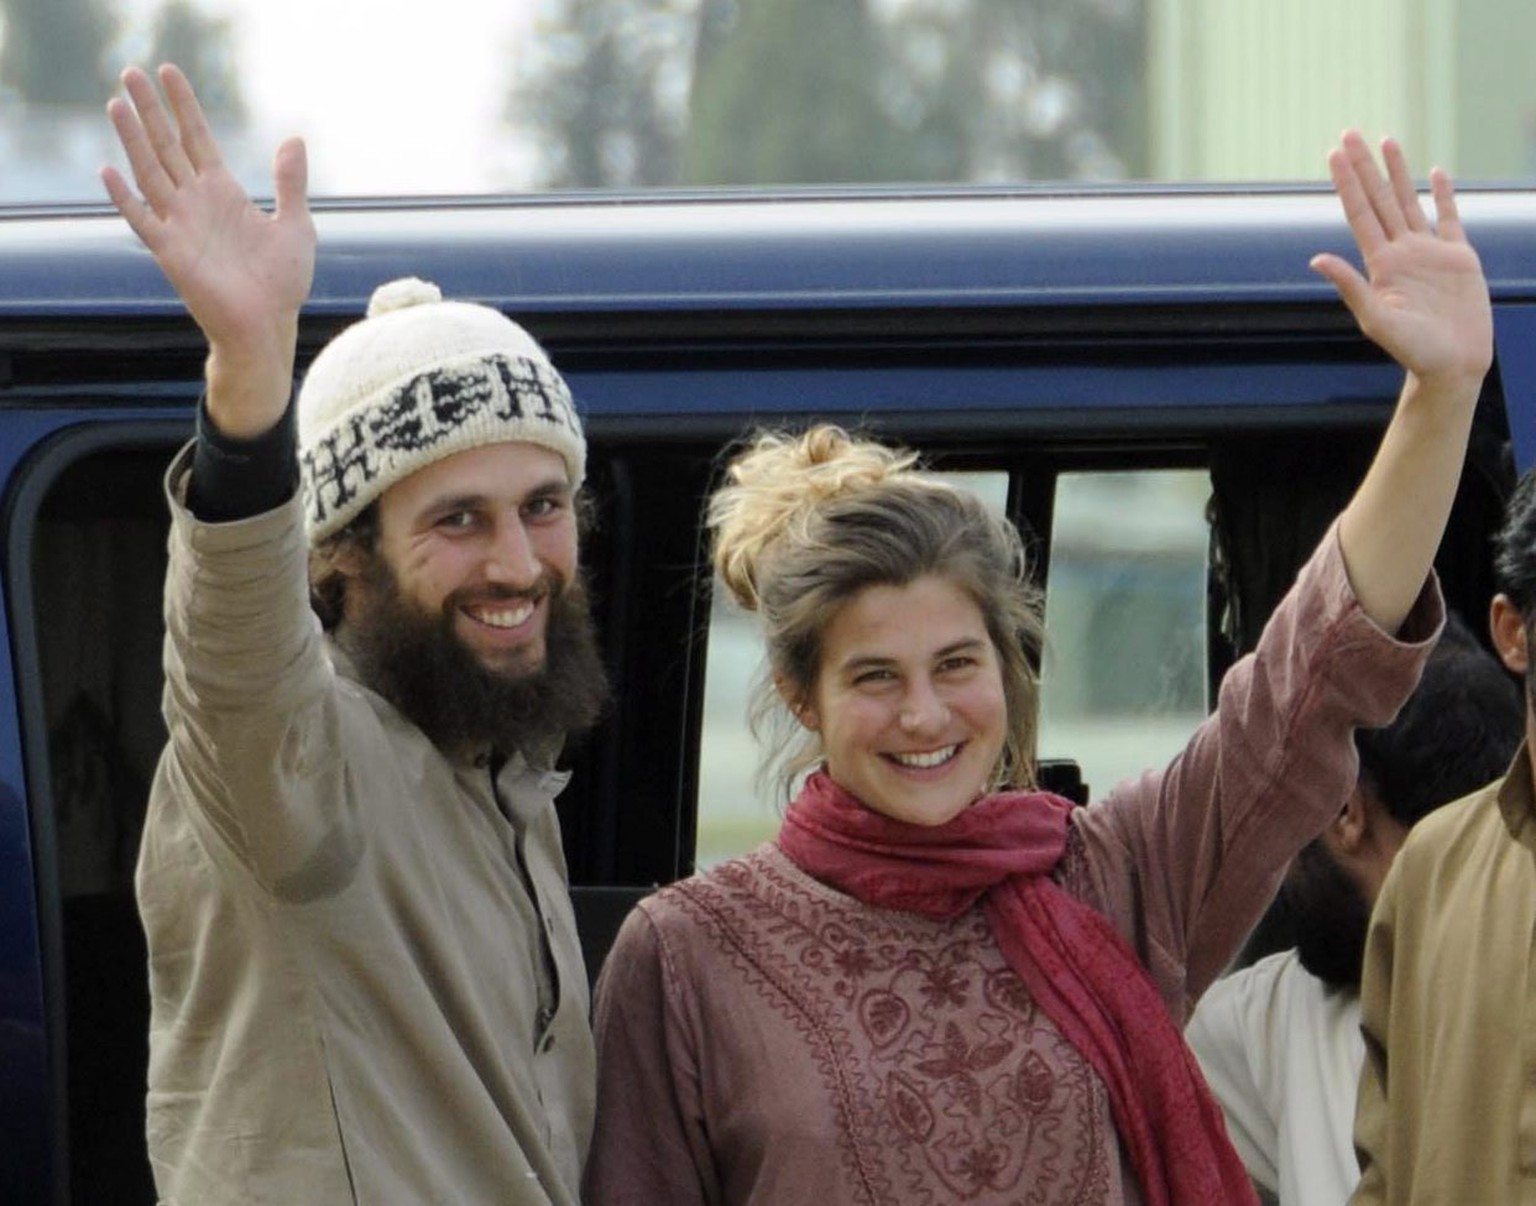 epa03145685 Swiss couple Olivier David Och (L) and Daniela Widmer (R) wave upon their arrival at the airport in Islamabad, Pakistan, following their escape from Taliban militants, on 15 March 2012. The  Swiss tourist couple abducted from south-western Pakistan nine months ago have managed to escape from captivity, a Pakistan army spokesman said on 15 March. Olivier David Och, 31, and Daniela Widmer, 28, were kidnapped 01 July 2011 in the Loralai district of the south-western province of Balochistan while on their way back to Europe through Iran and Turkey after entering Pakistan from India on 28 June 2011.  EPA/T. MUGHAL